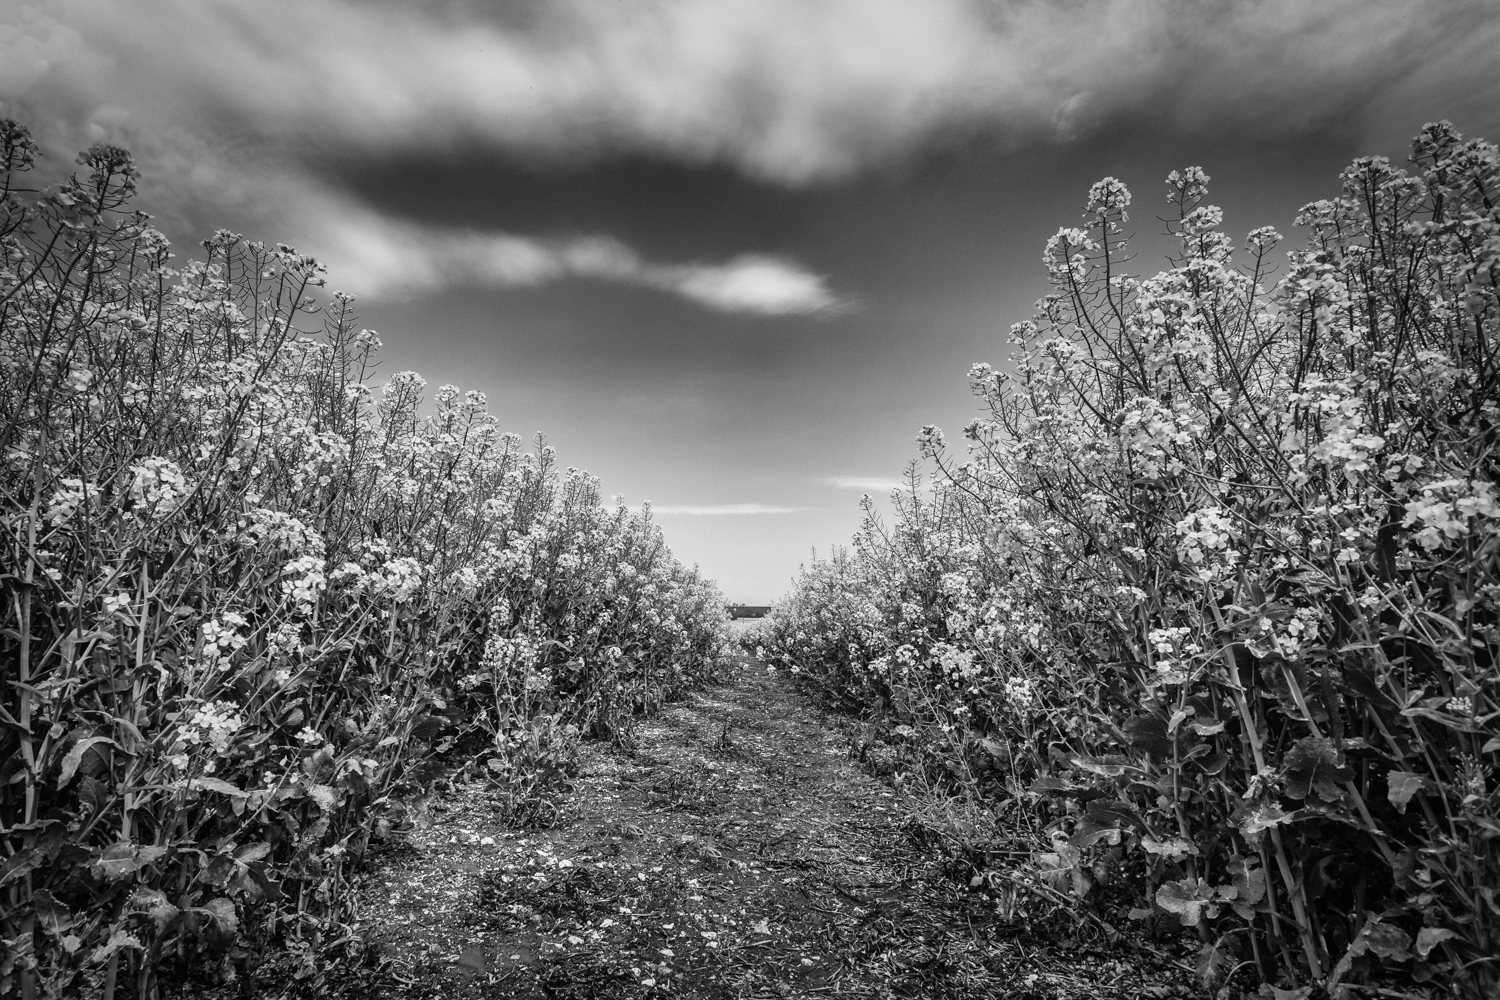 Hampshire Landsacpe Photography - Black and White Field